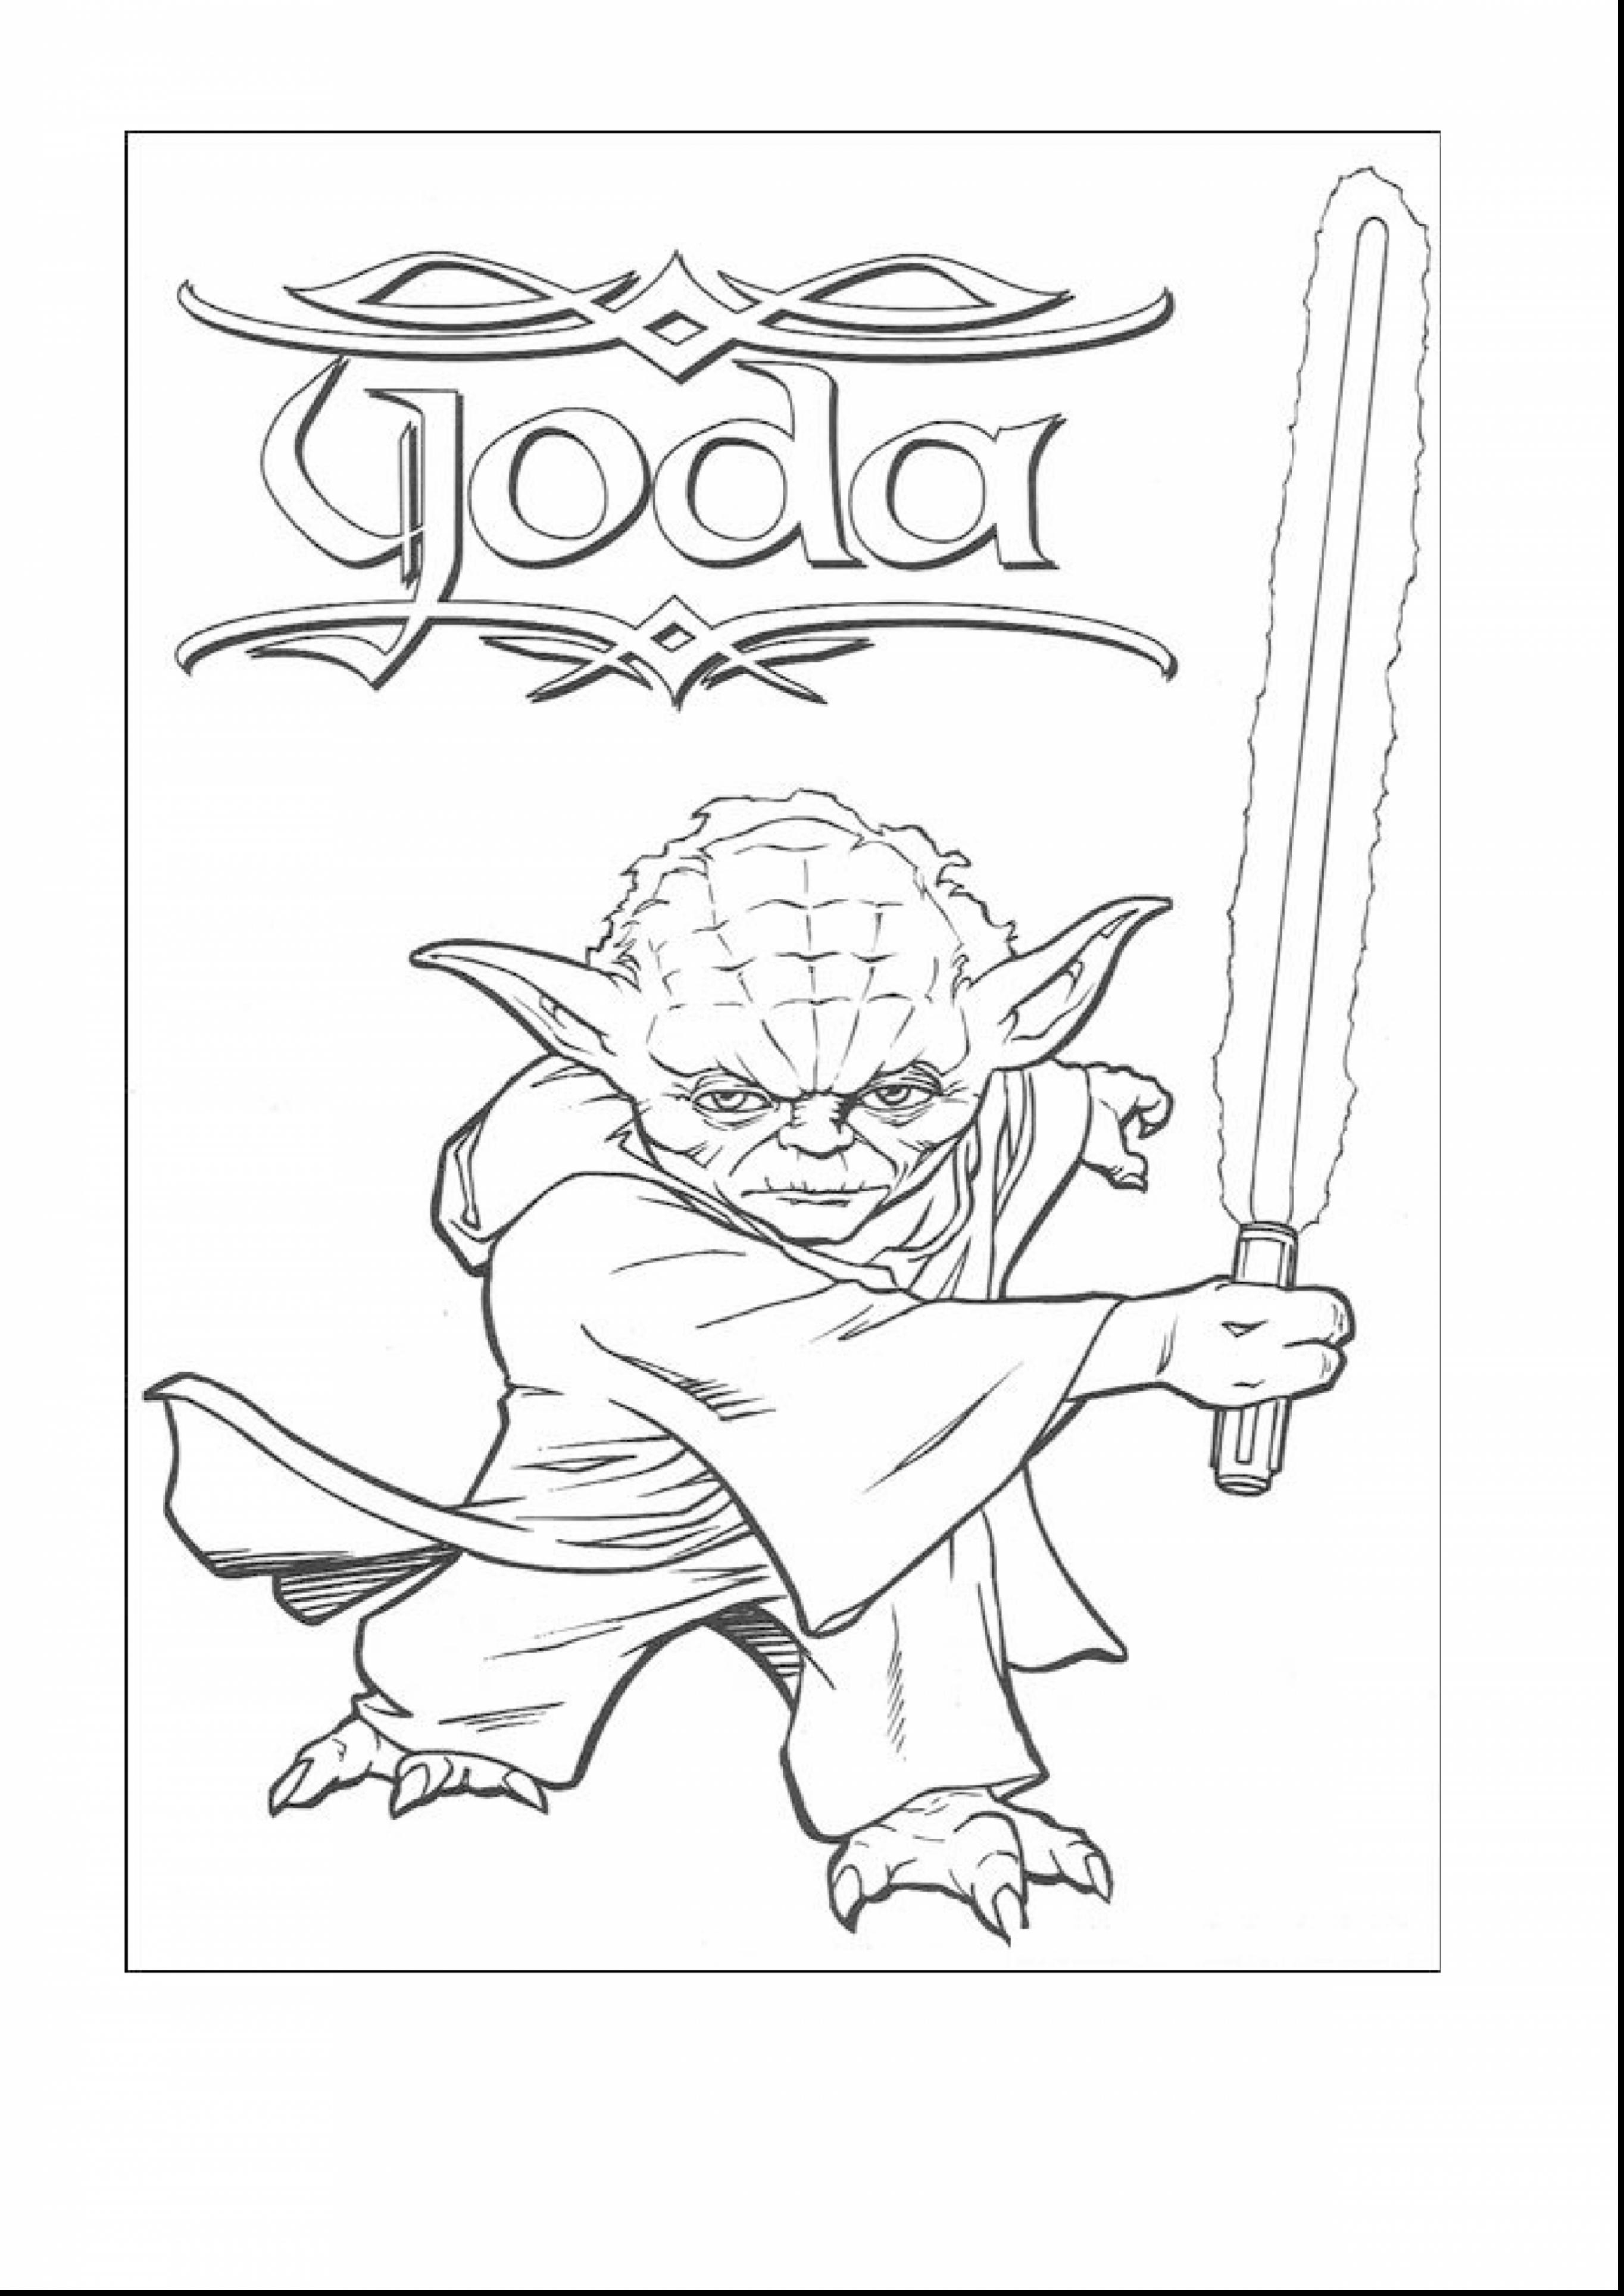 Fresh Free Printable Star Wars the Last Jedi Coloring Pages Gallery Of Unique Star Wars Cartoon Characters Coloring Pages Collection to Print